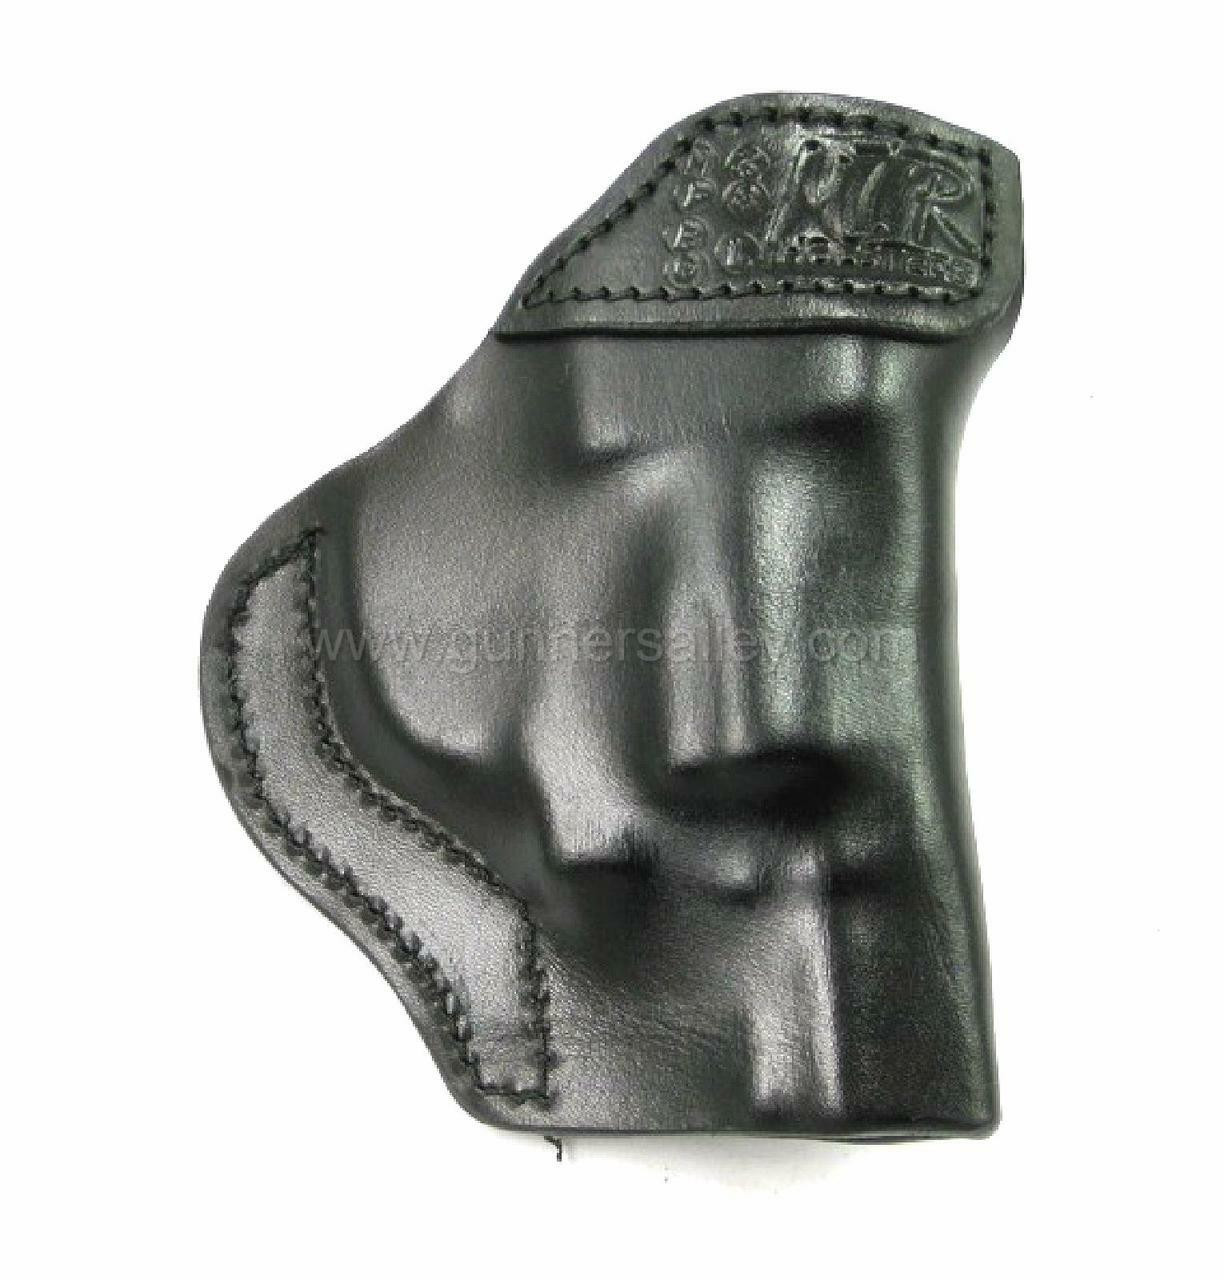 LH Black MTR Custom Tuckable Adversary Clip-On IWB Holster for a S&W Bodyguard .38 with Integrated Laser - Rear View